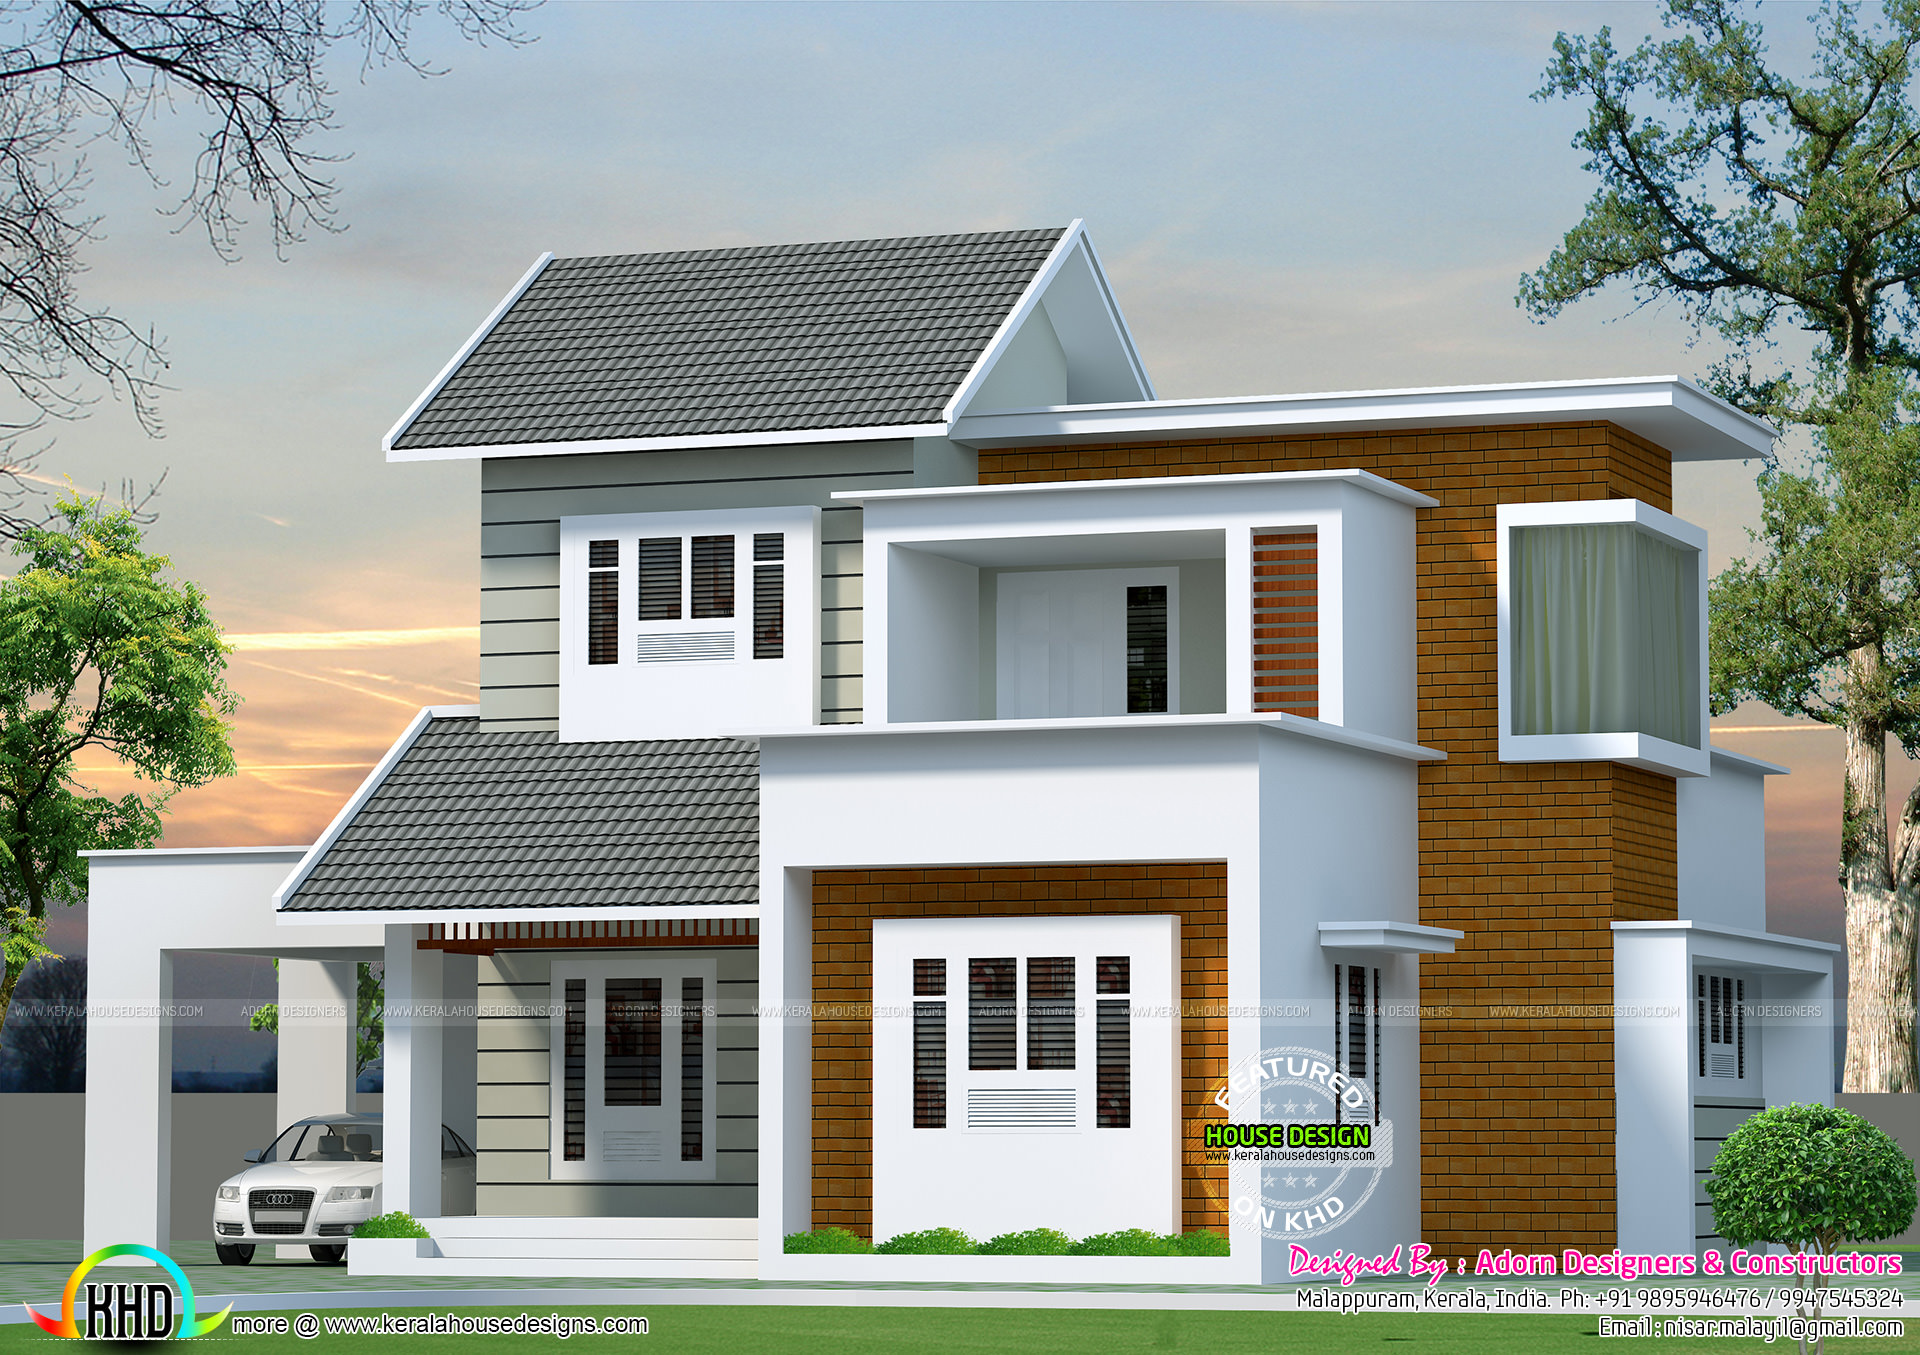 October 2016 kerala home design and floor plans Latest simple house design